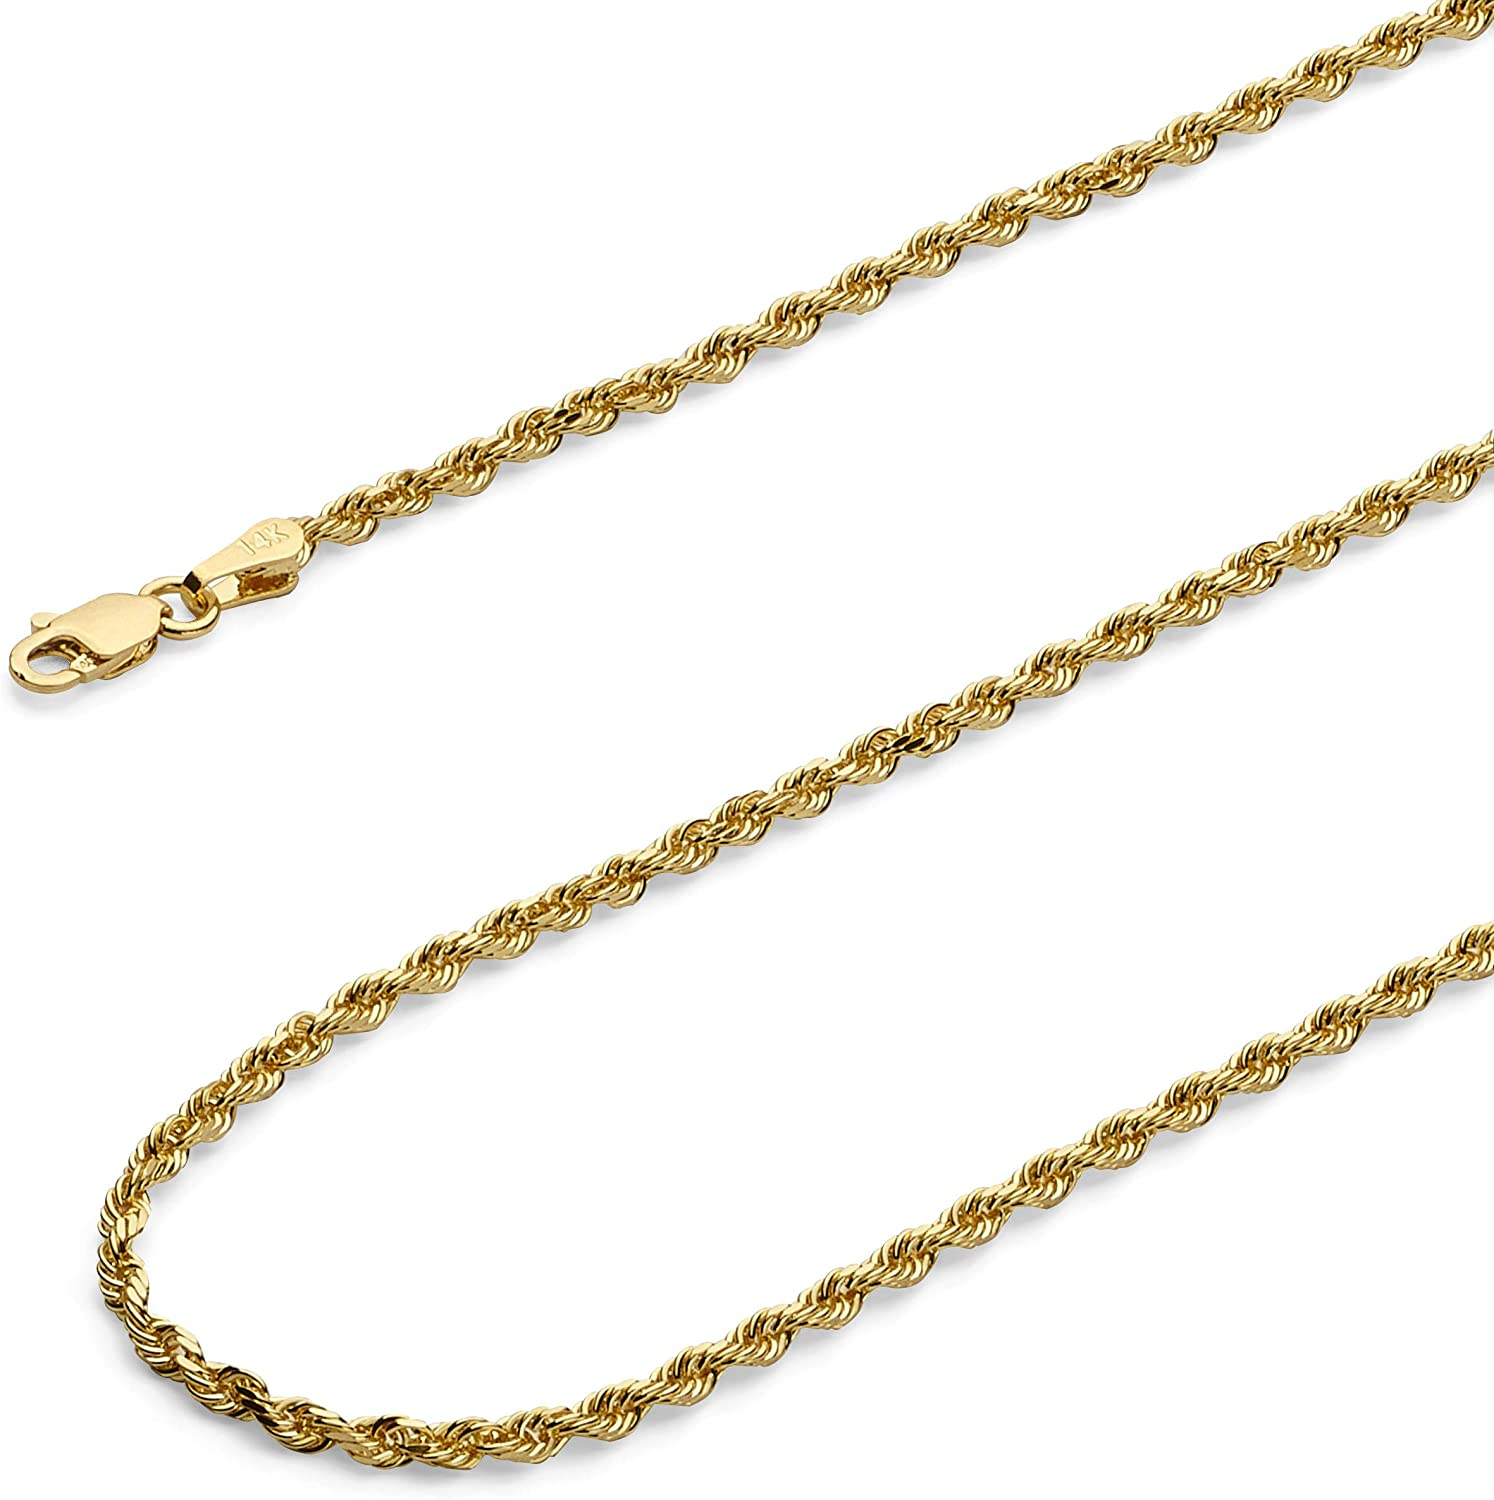 Wellingsale 14k Yellow Gold Brilliant Solid 2.5mm Diamond Cut Solid Rope Chain Necklace with Lobster Claw Clasp